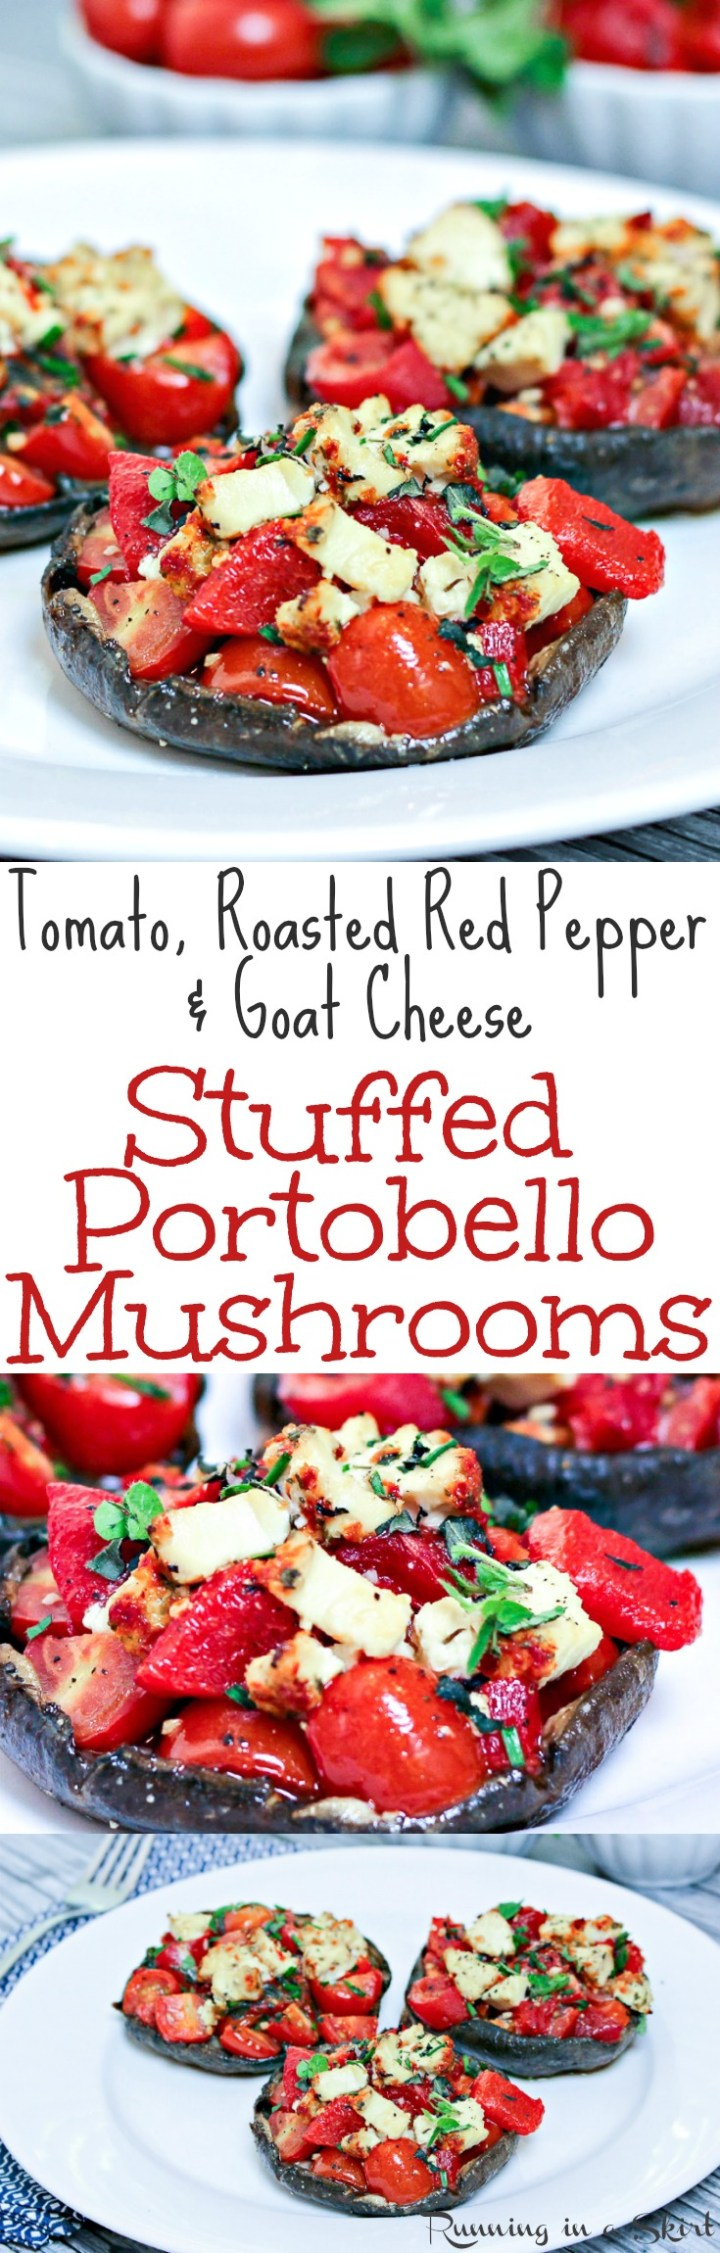 Healthy Vegetarian Stuffed Portobello Mushrooms recipe - with roasted tomato, roasted red peppers and goat cheese! Clean eating and a great option for a vegetarian main course. These caps are baked to perfection. Low Carb & Gluten free / Running in a Skirt via @juliewunder